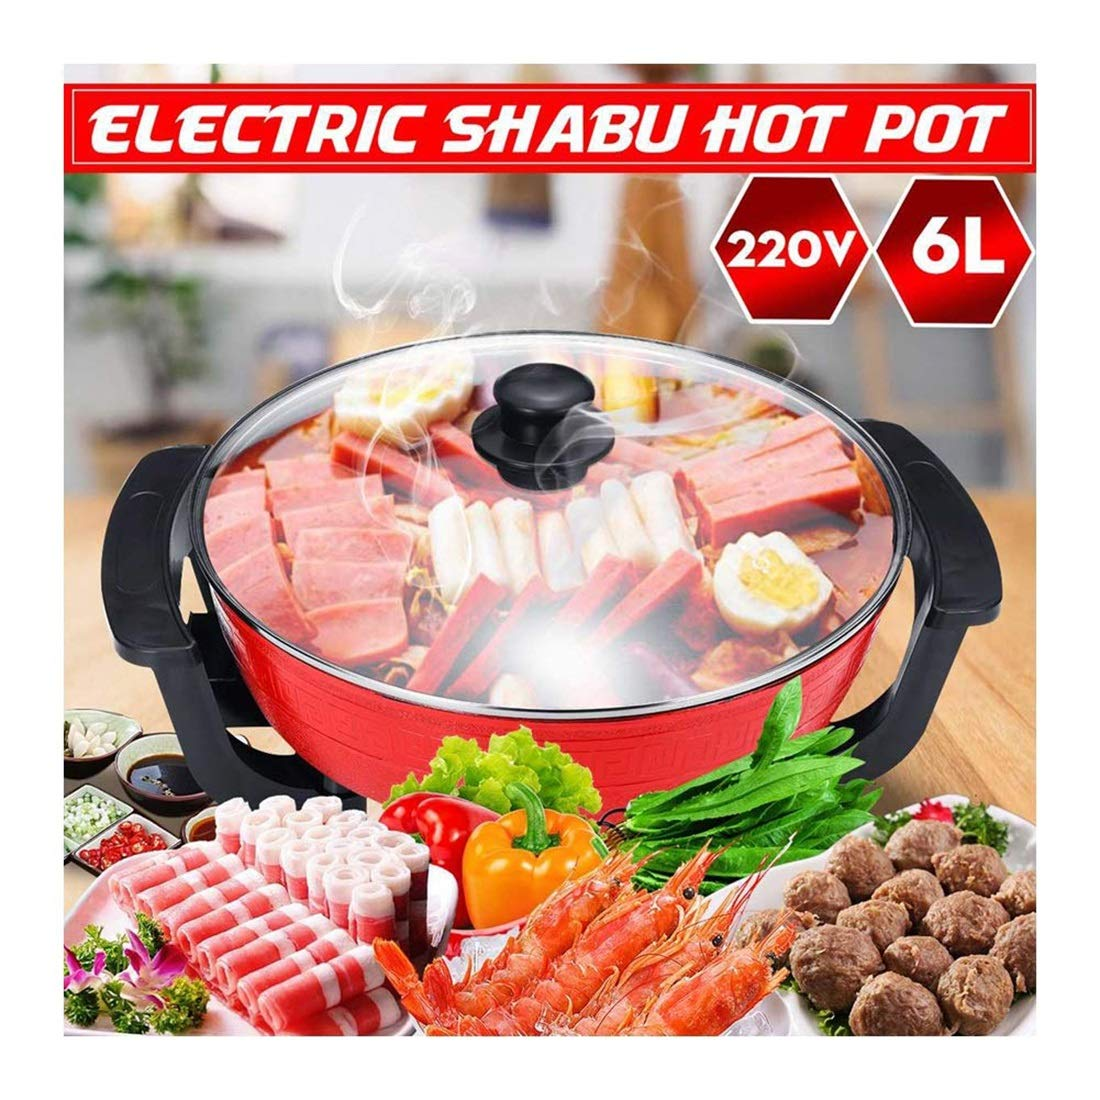 Non-Smoking Electric Hot Pot, Non-Stick Cookware Temperature Adjustable Family Dinner Hot Pot Kitchenware 220V 6L Capacity 1-10 People Can Use by HXD